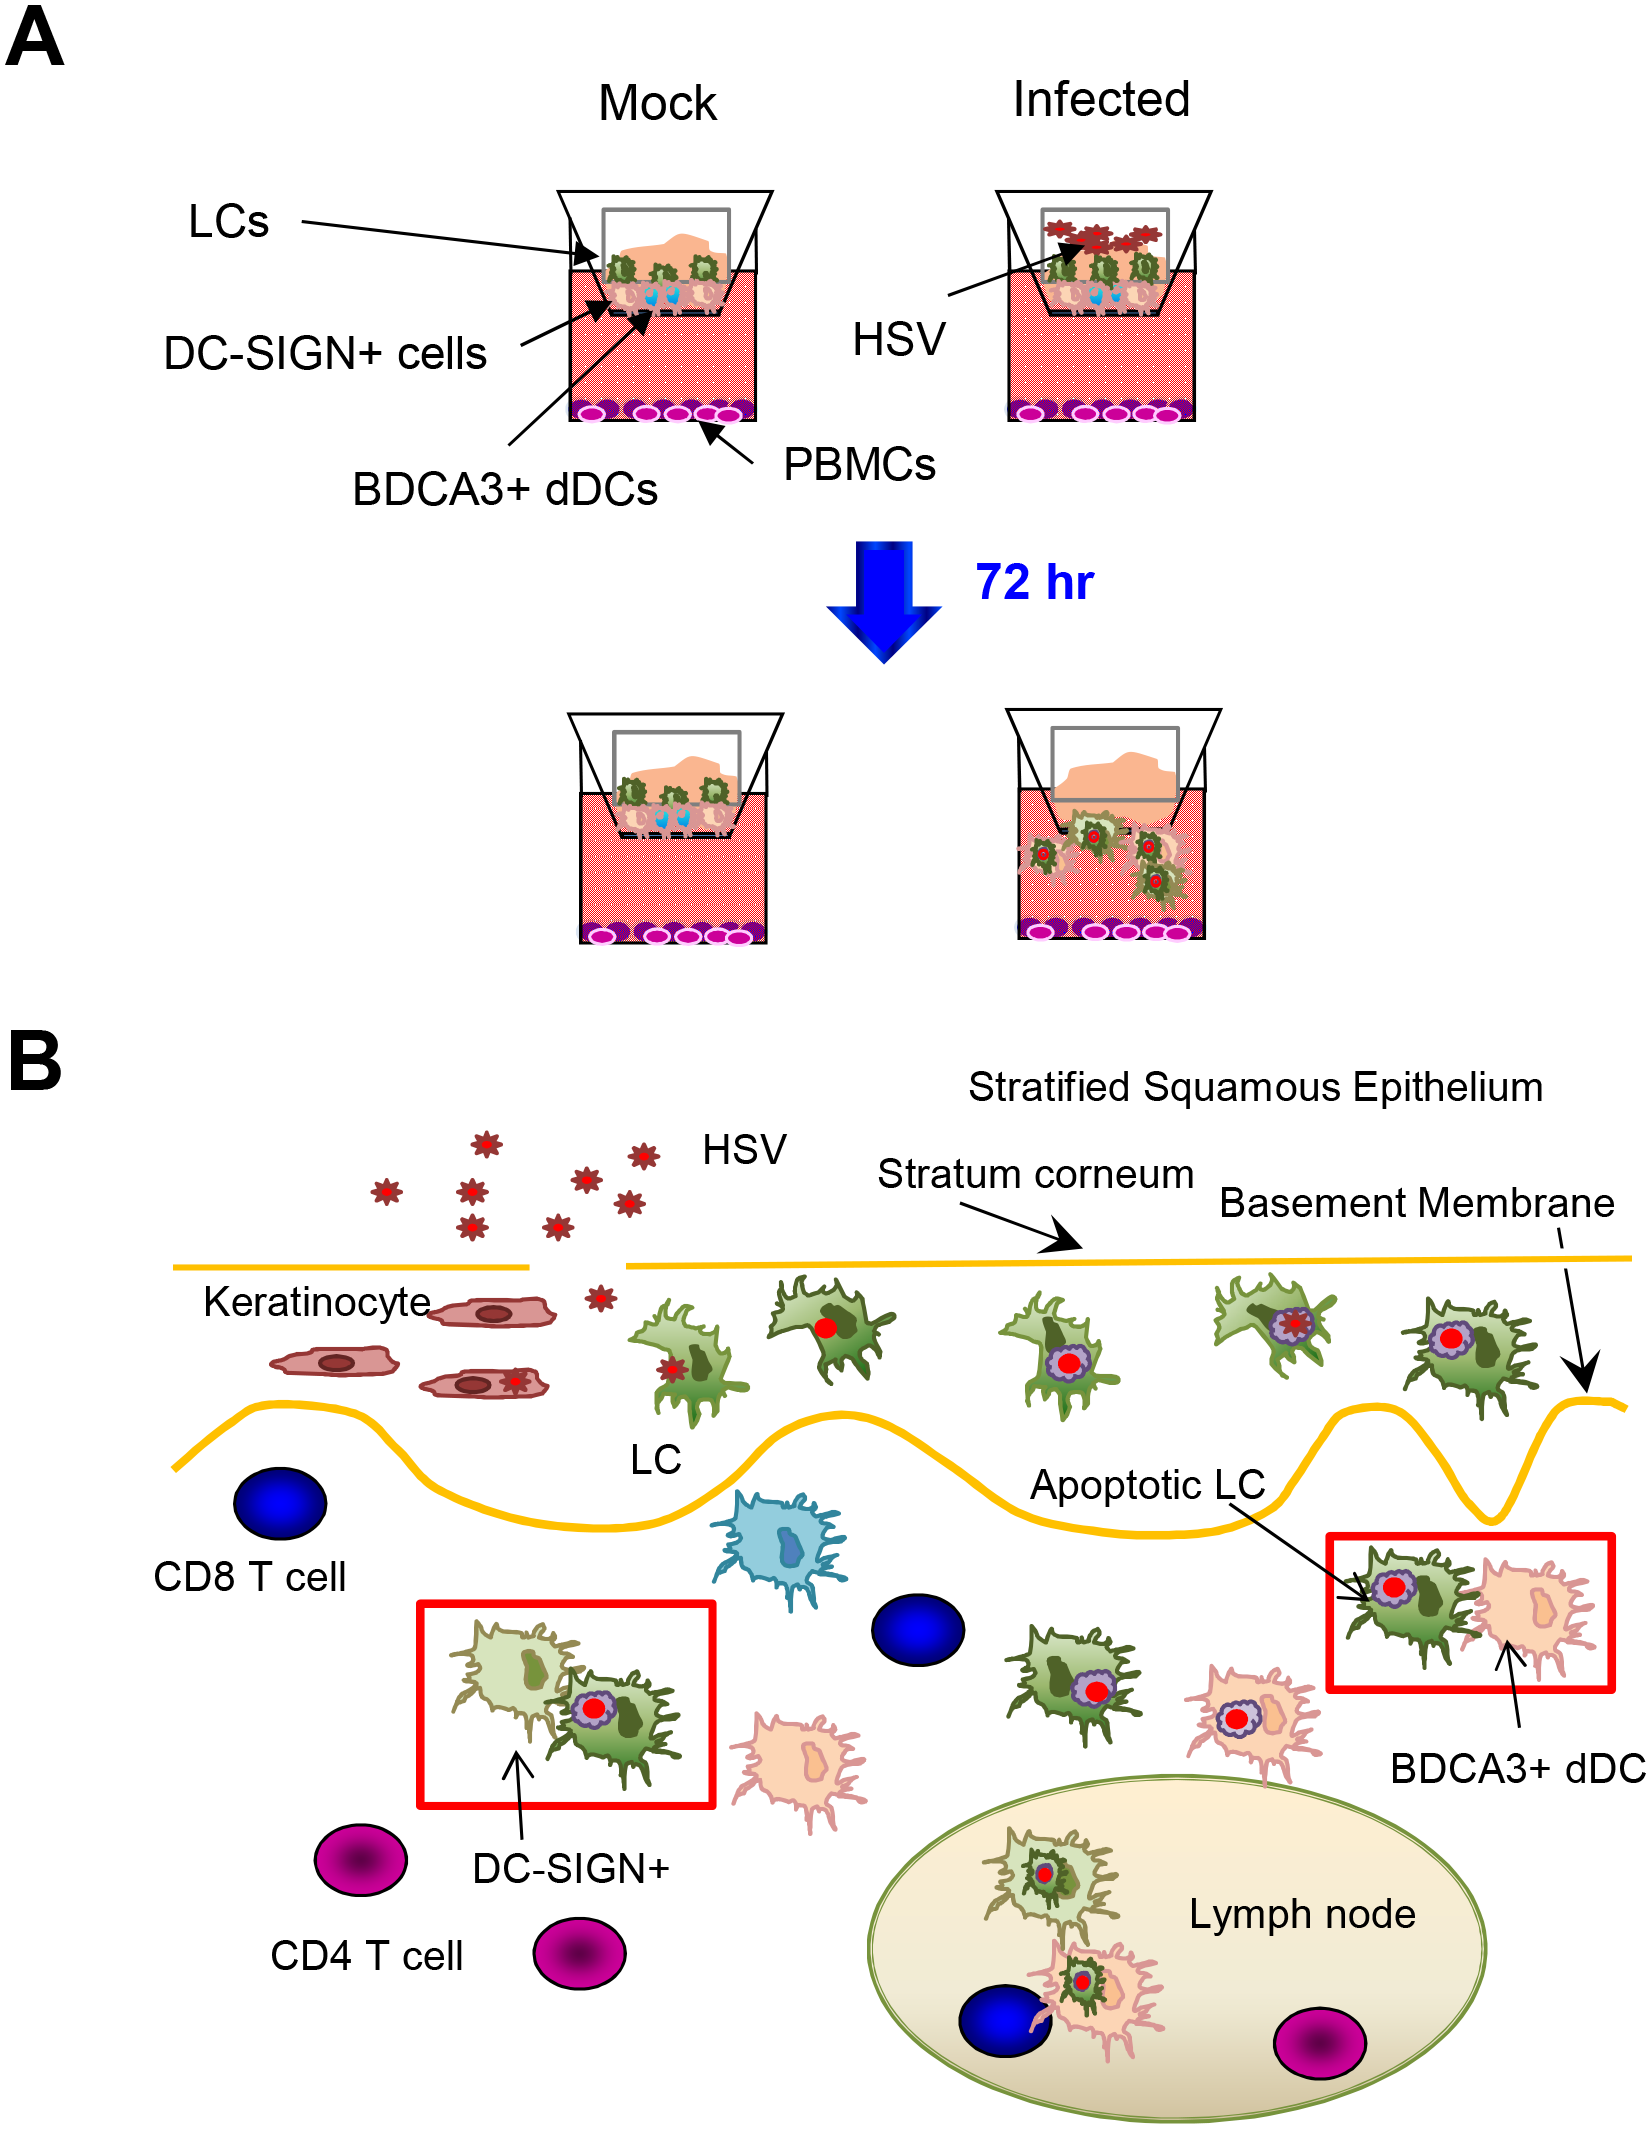 Migration and/or interaction of HSV infected human LCs with dermal DCs.